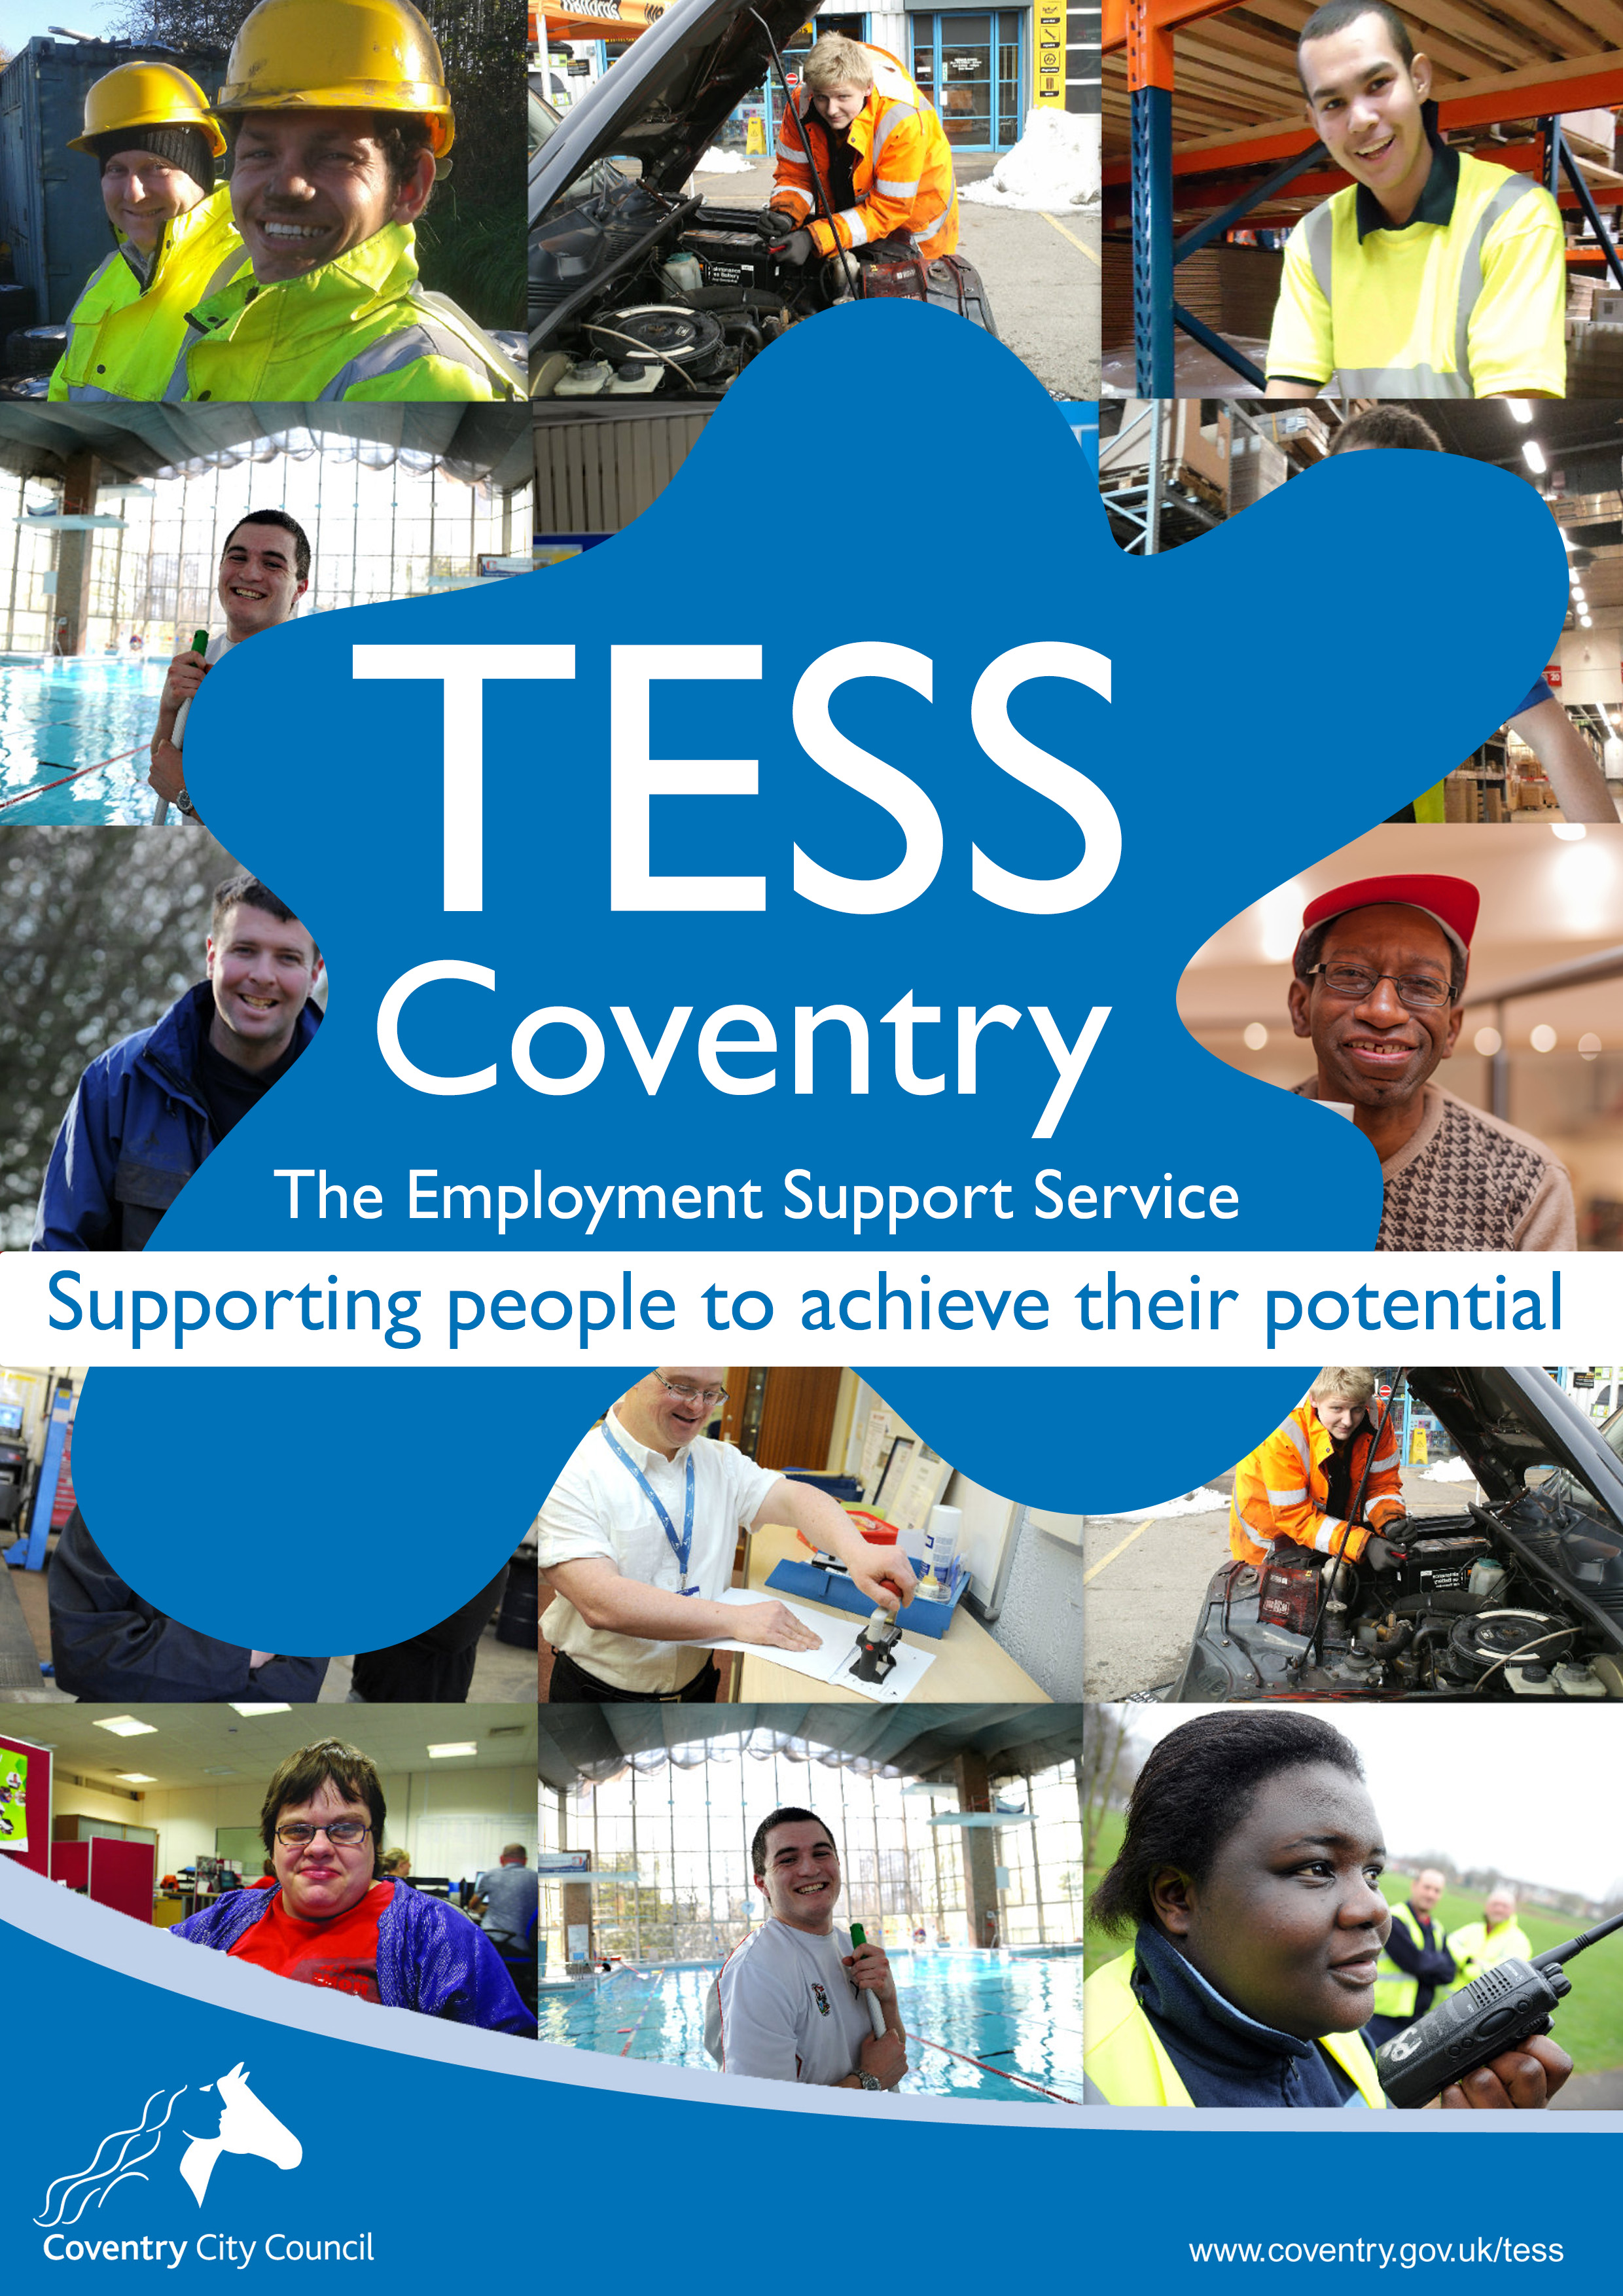 The Employment Support Service [TESS